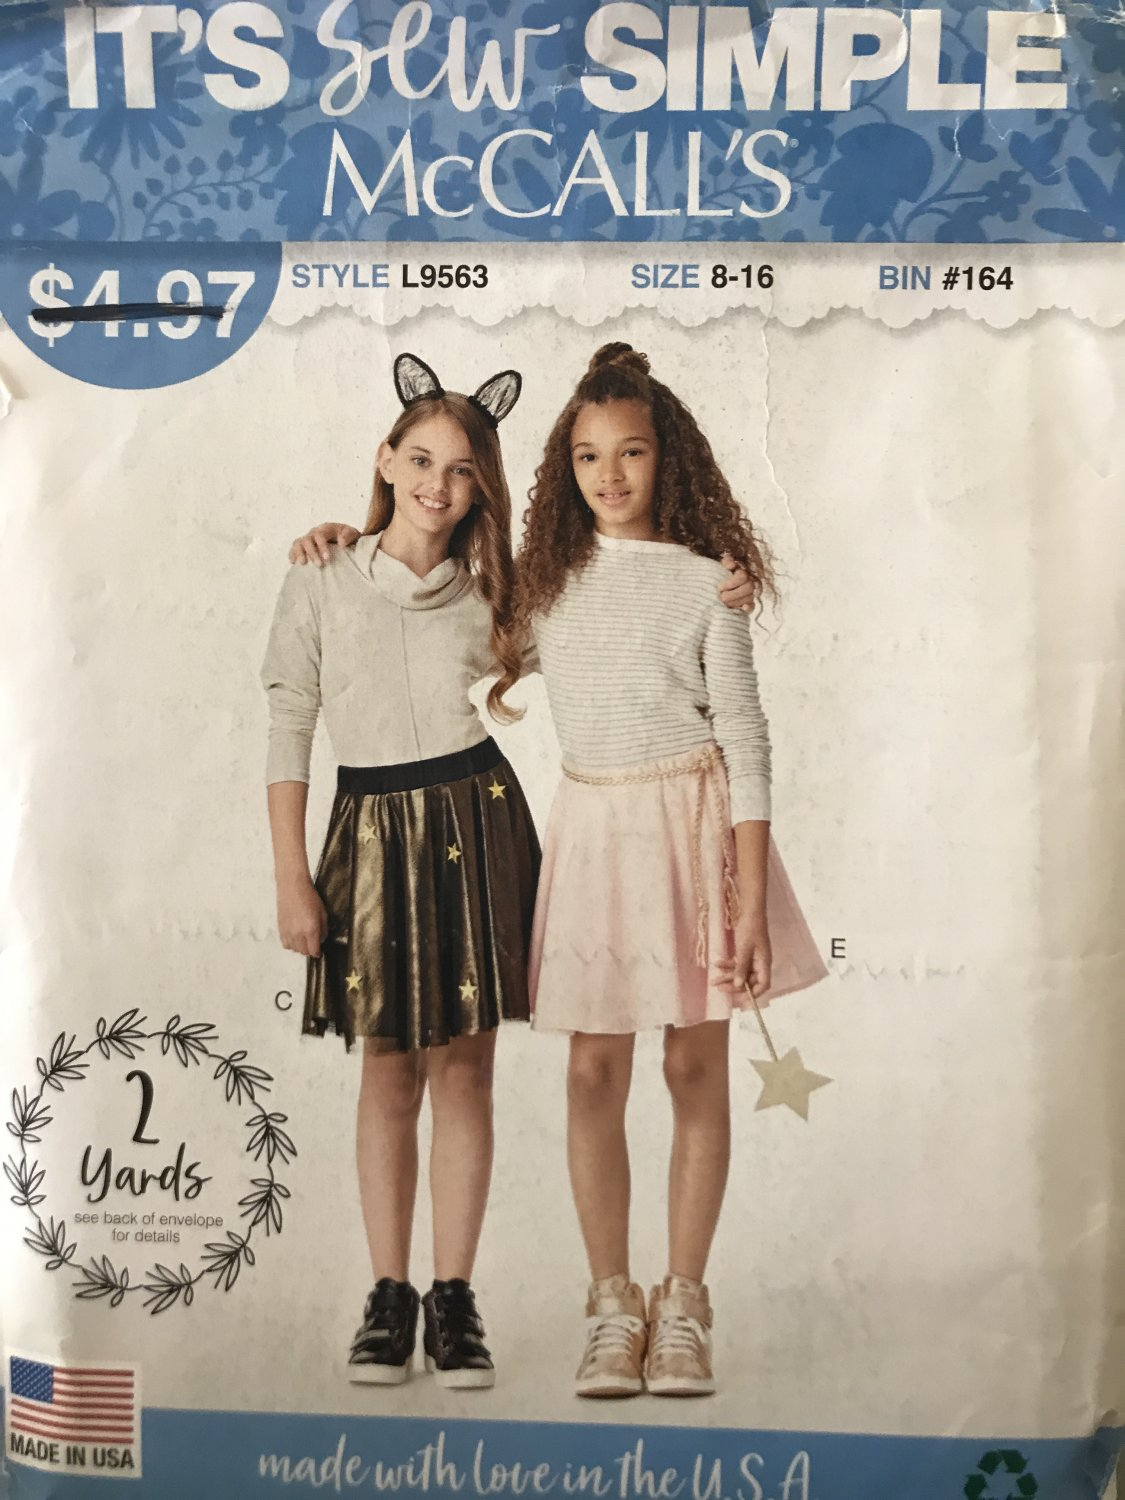 Mccalls Sewing Pattern 9563 L9563 girls' skirts with overlay size 8-16